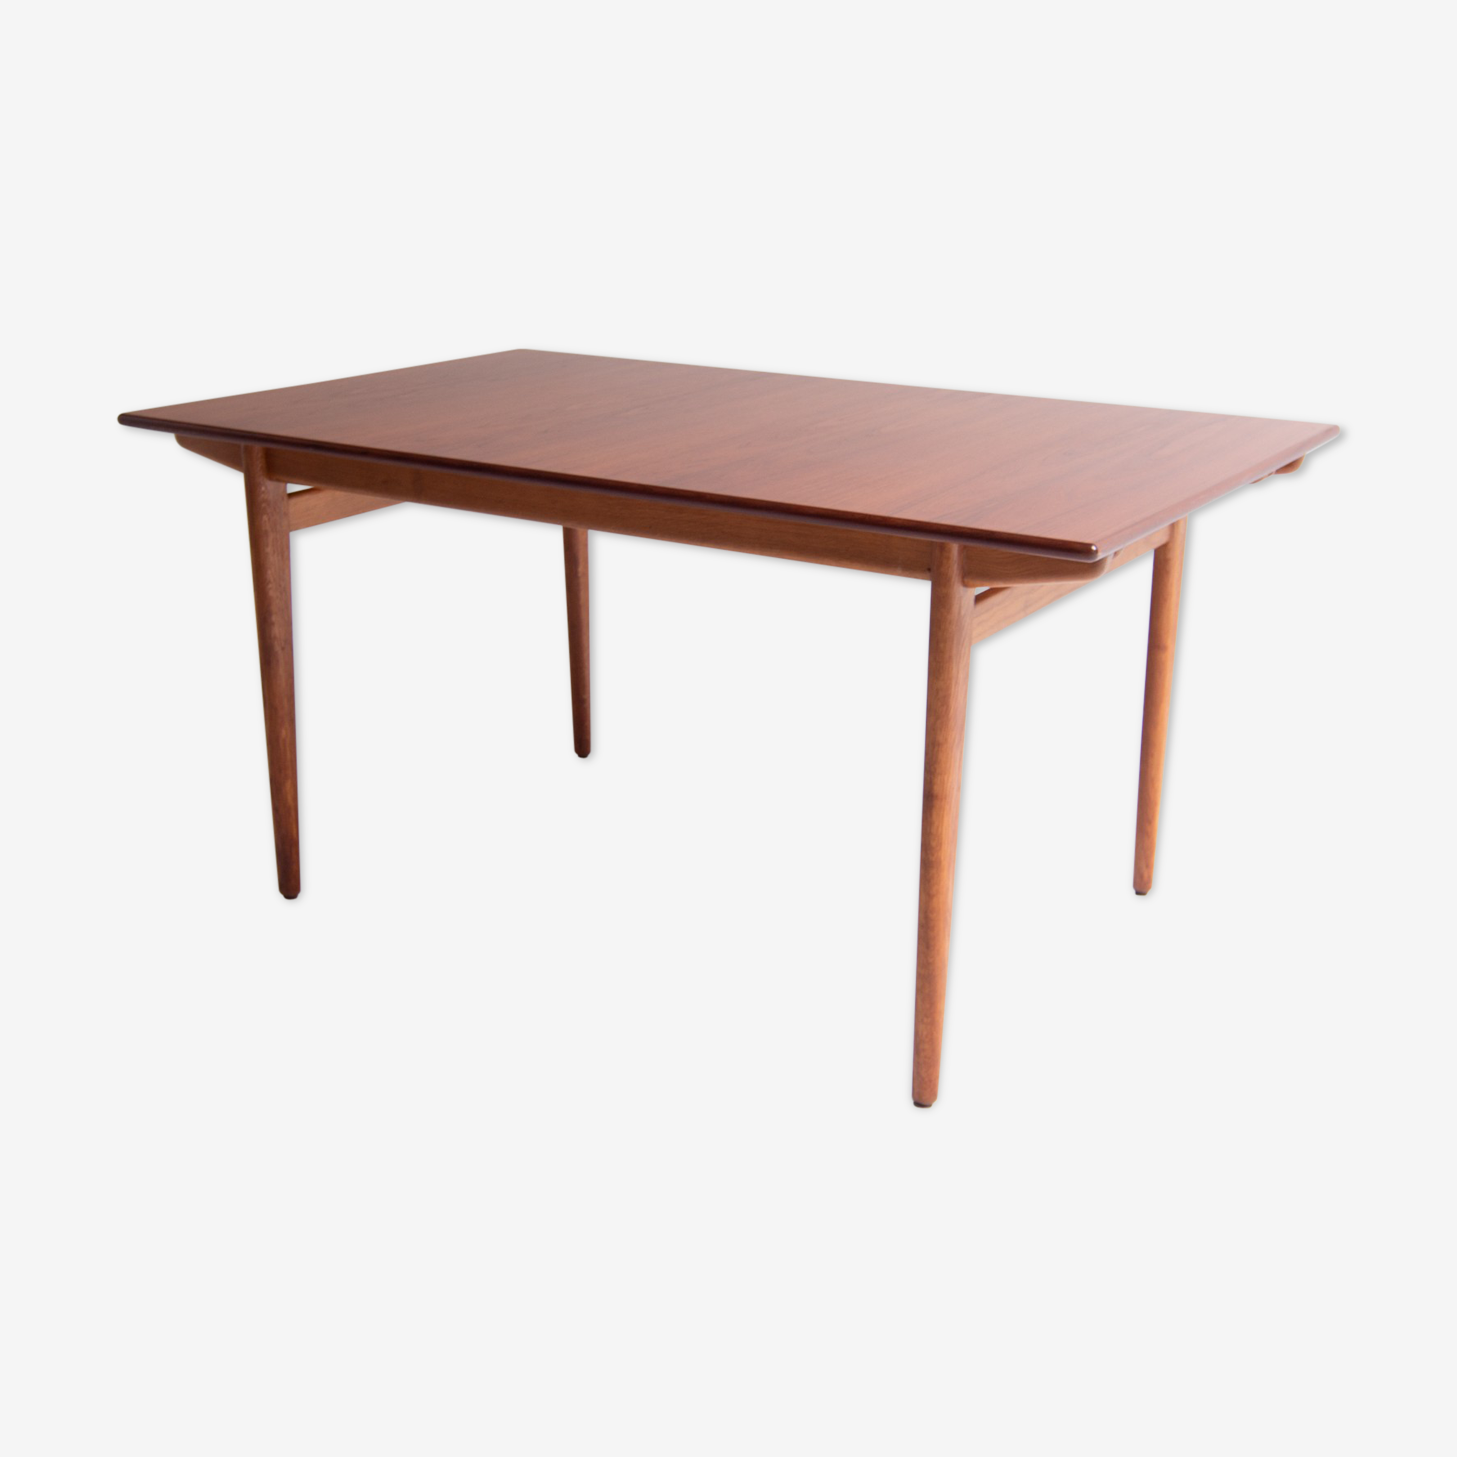 Extendable table by J O Carlsson for YCW Aktiebolaget